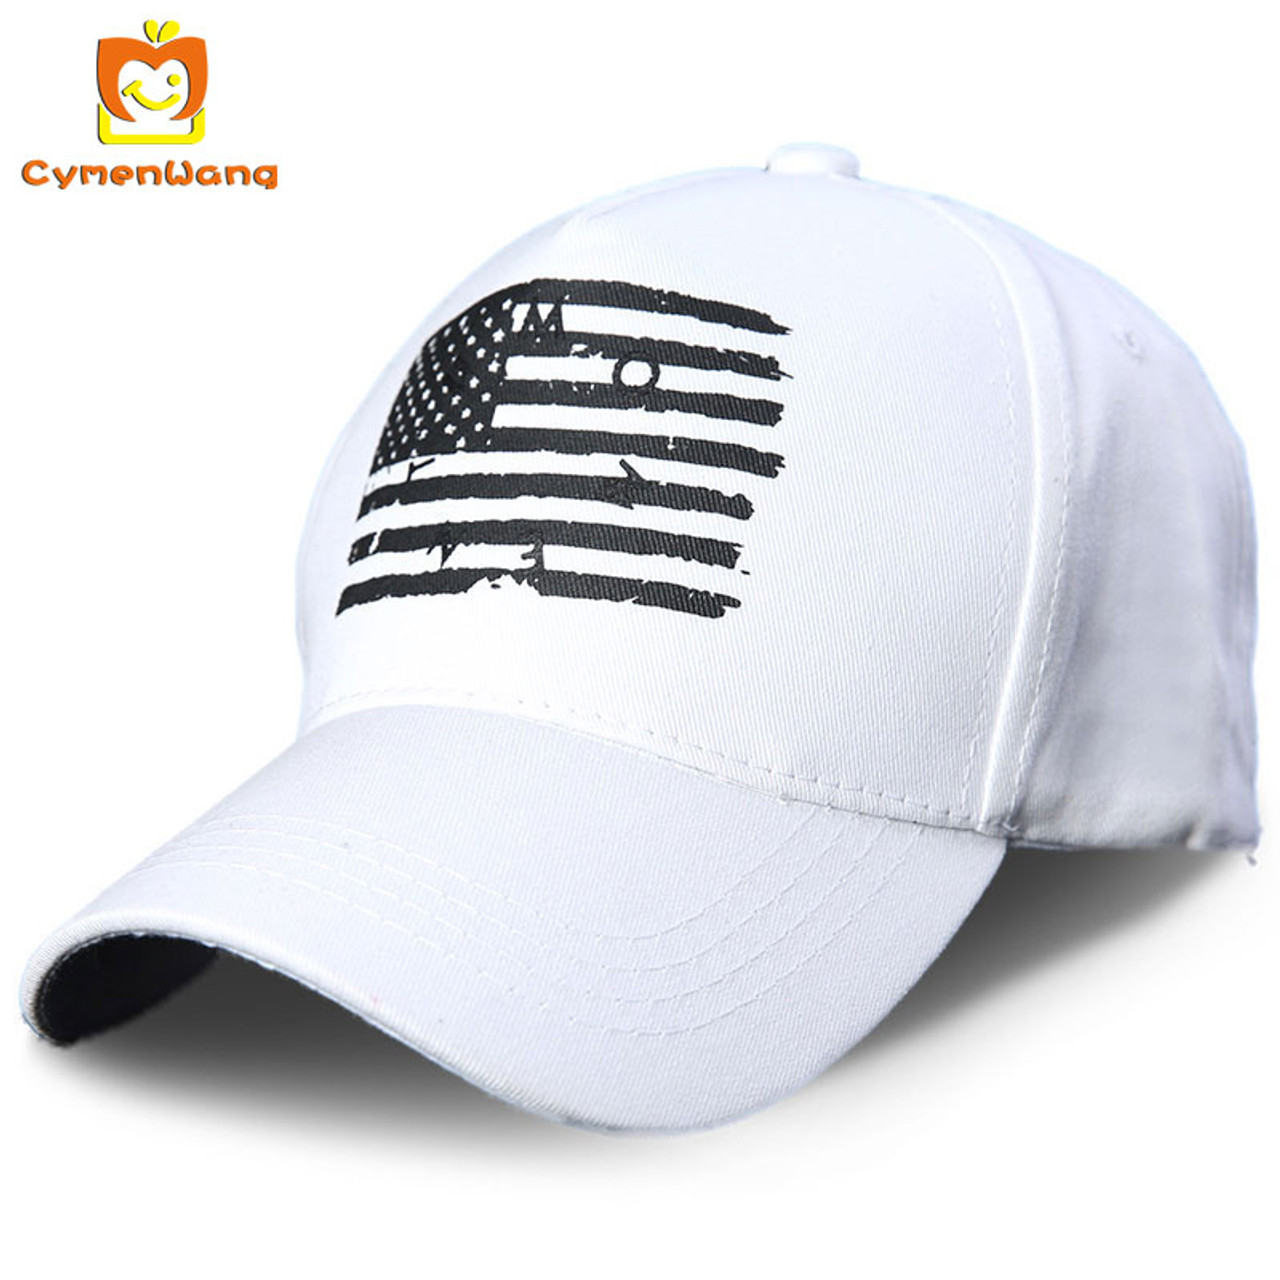 5f52633336d Cymenwang wholesale brand spring cotton baseball cap snapback hat summer  hip hop fitted hats gorras 5 ...